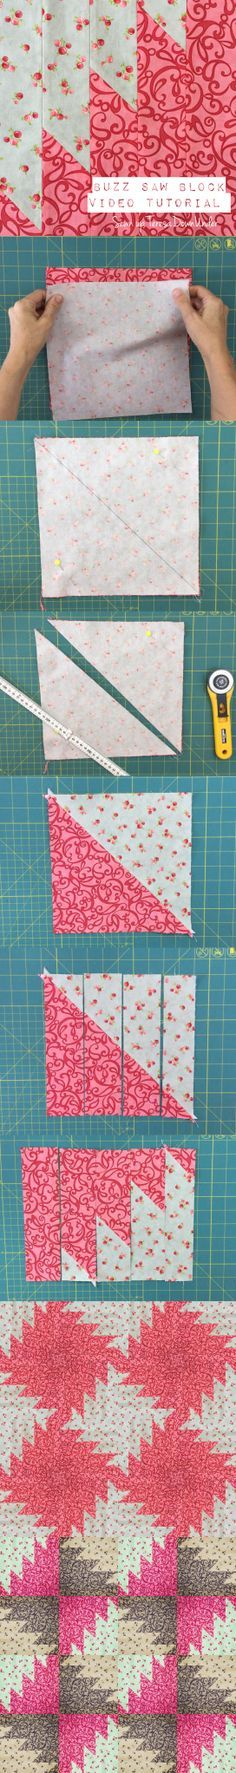 Buzz saw quilt block - quick and easy- video tutorial